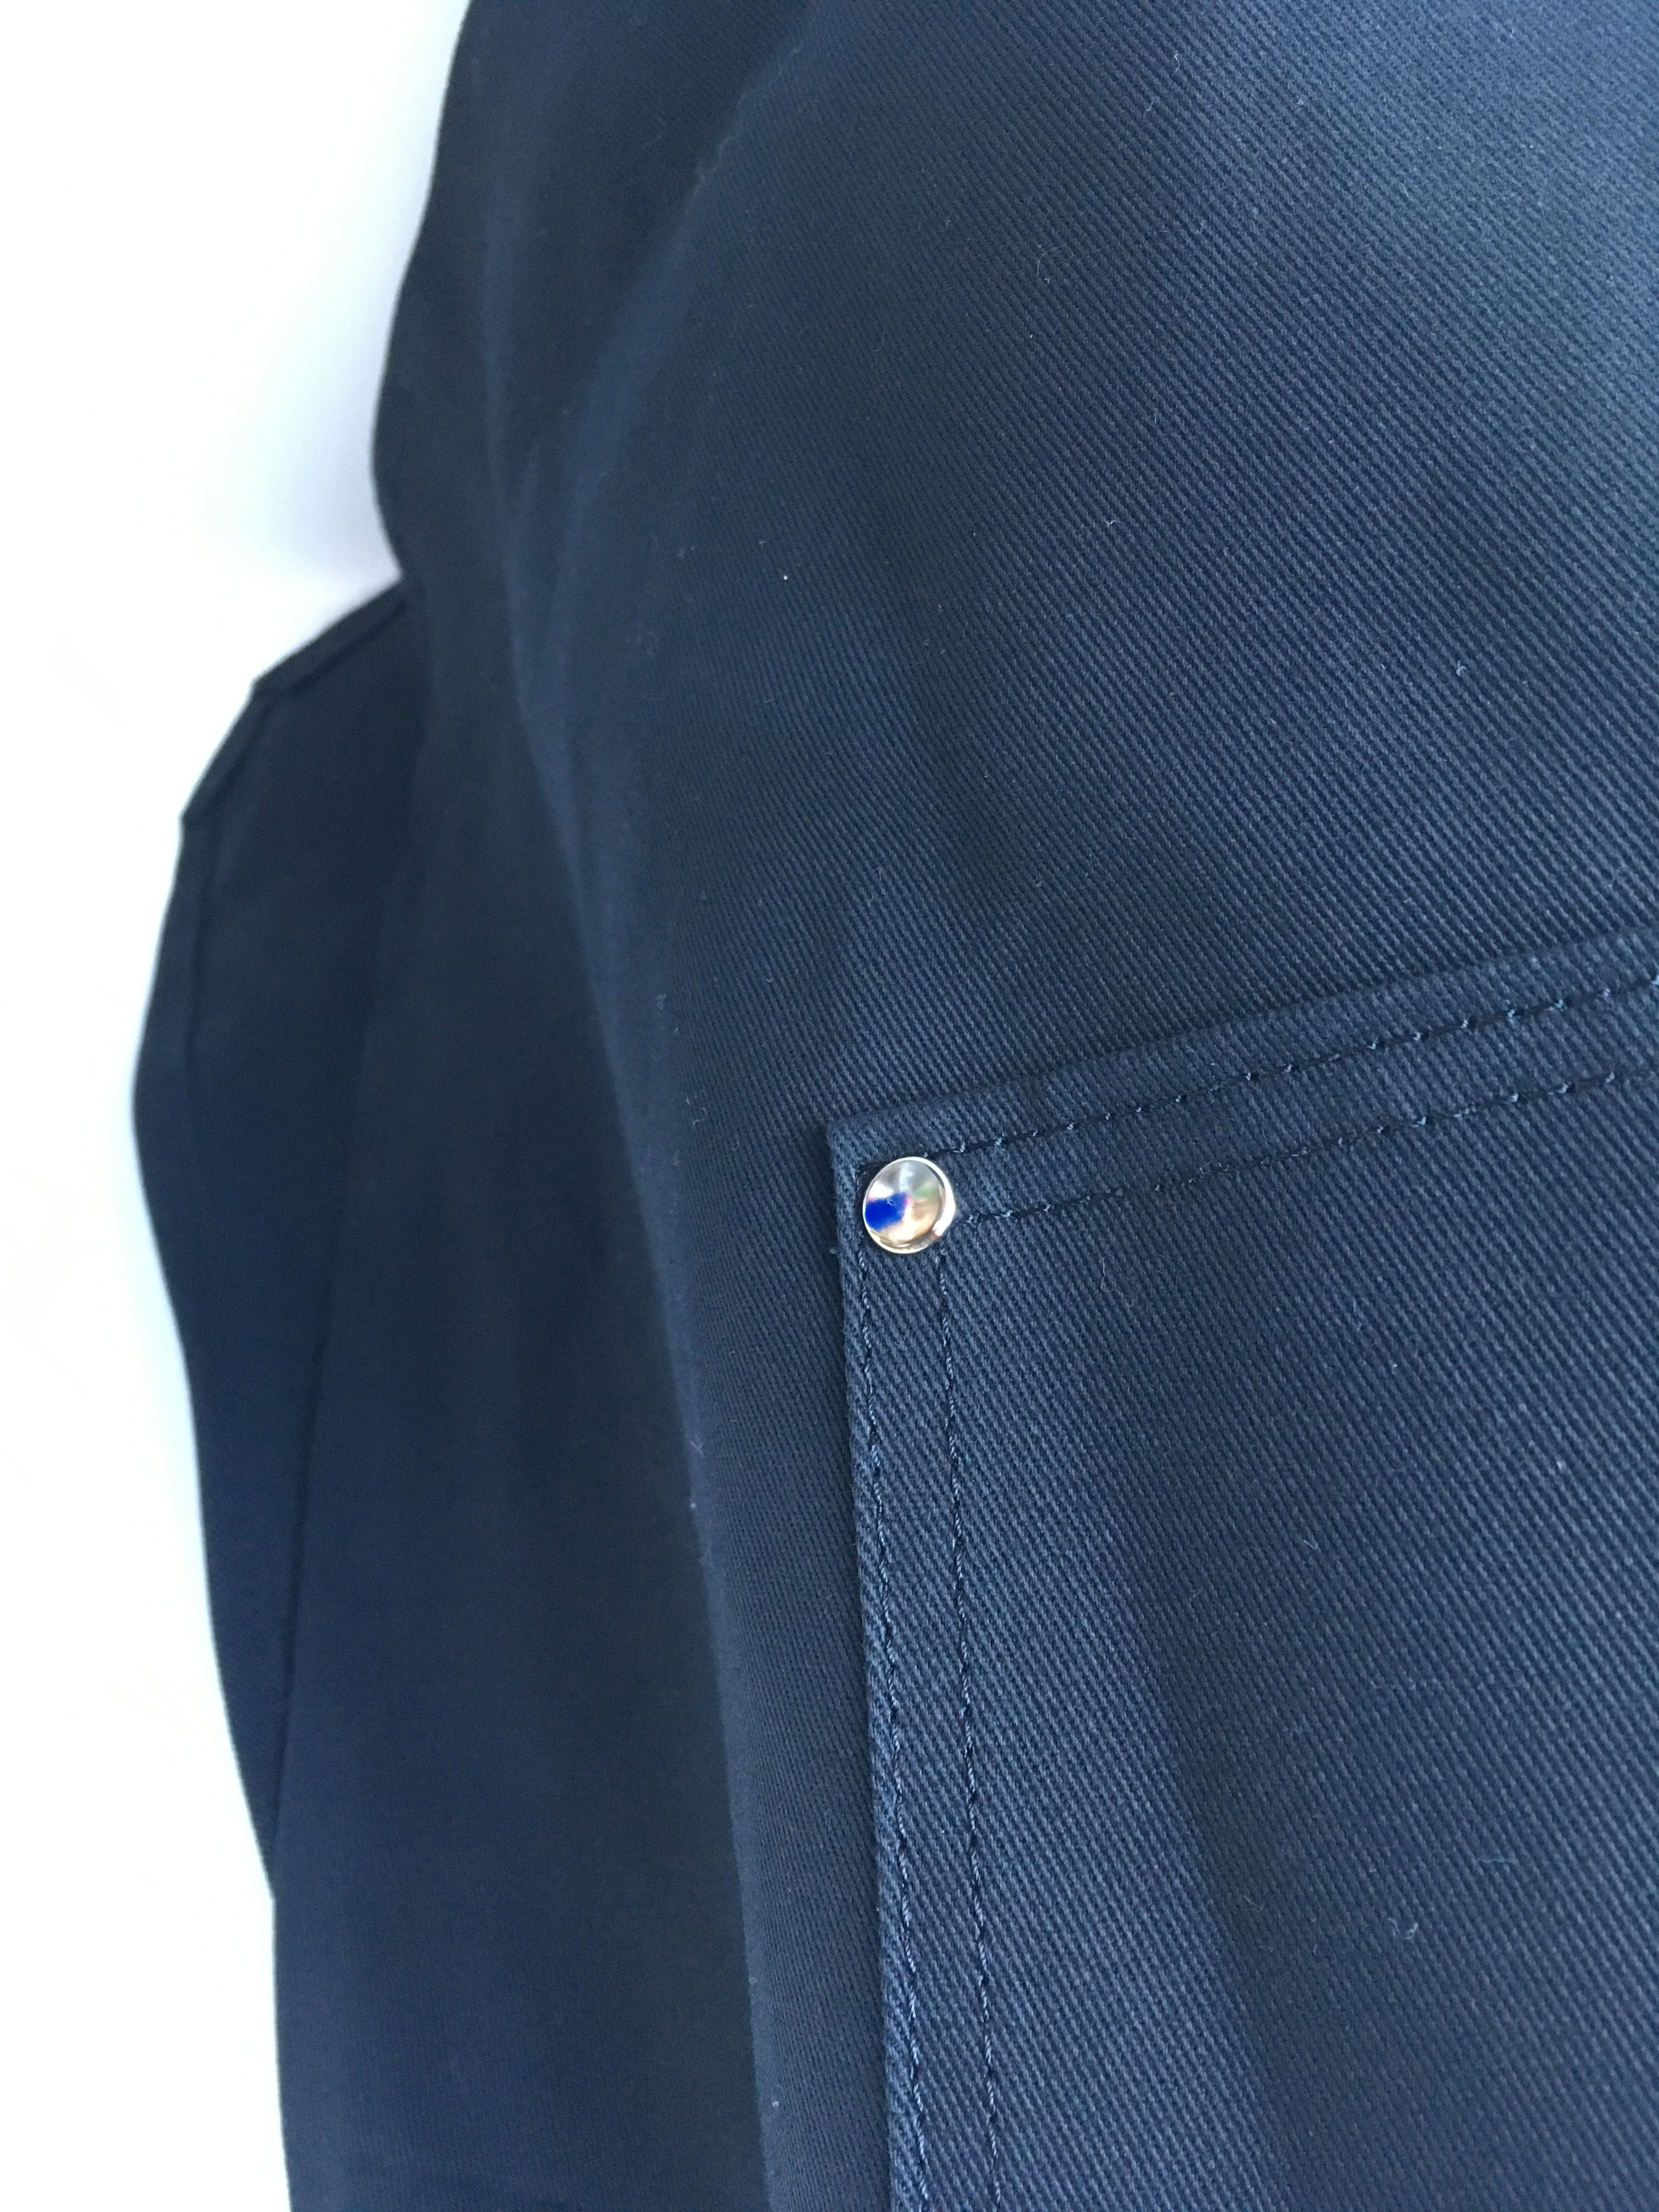 Coverall Apron in Black - pocket detail